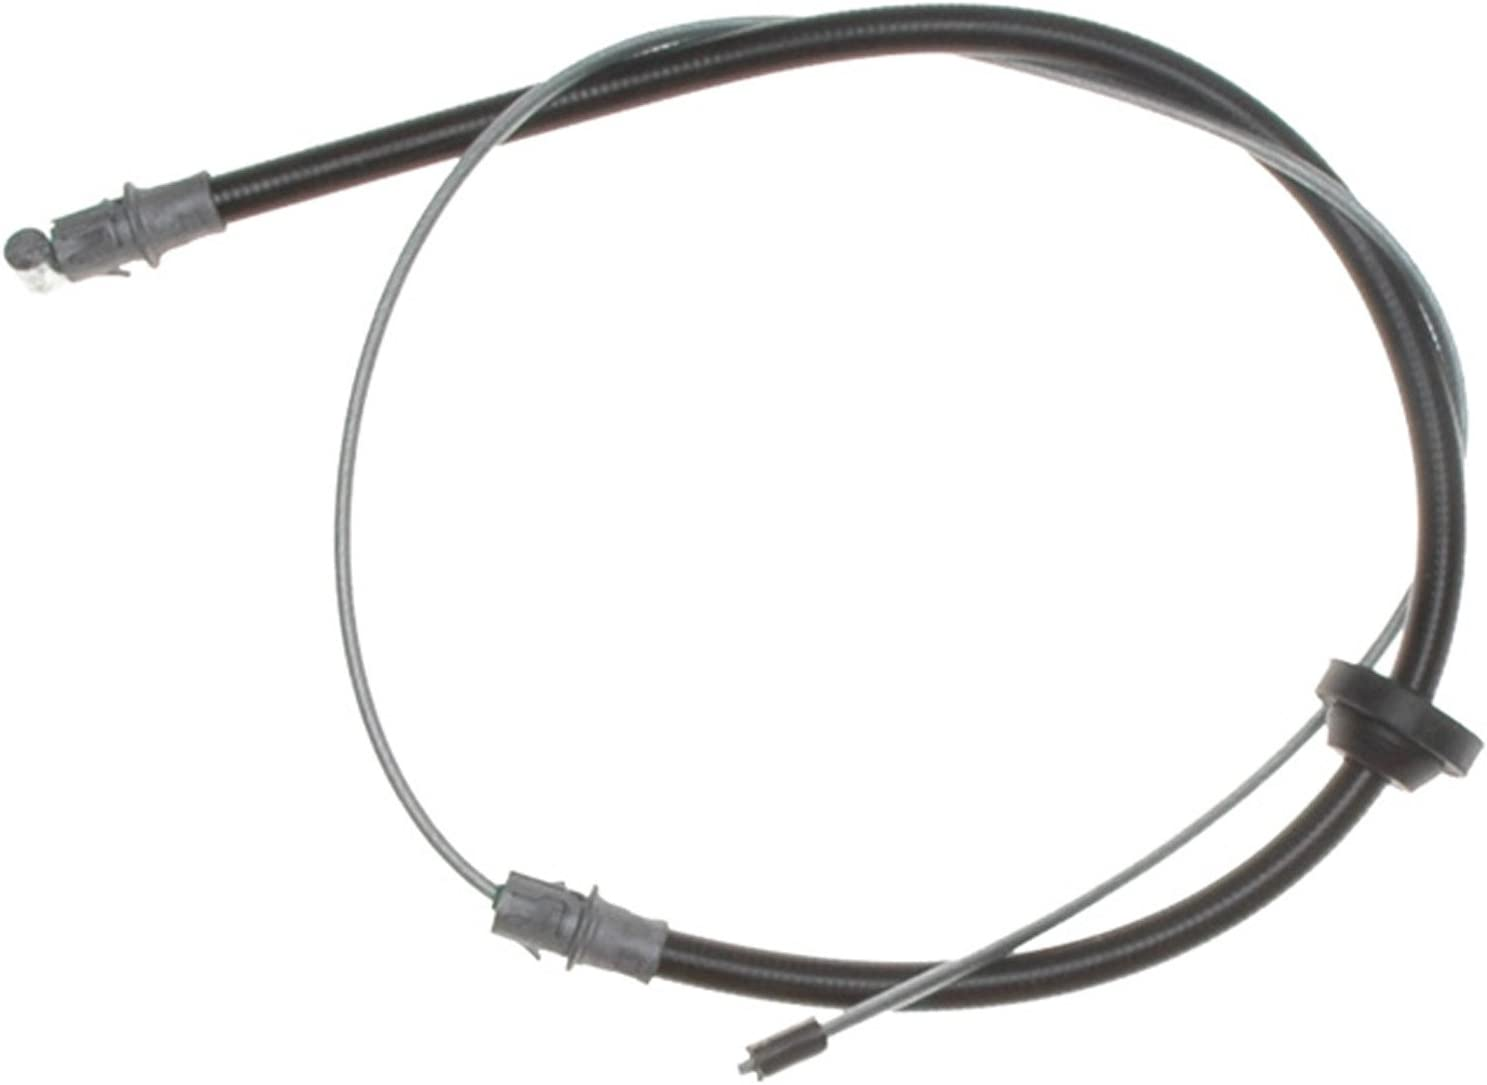 ACDelco Professional 18P1664 Front Super-cheap Parking Brake Assembly Cable Tampa Mall